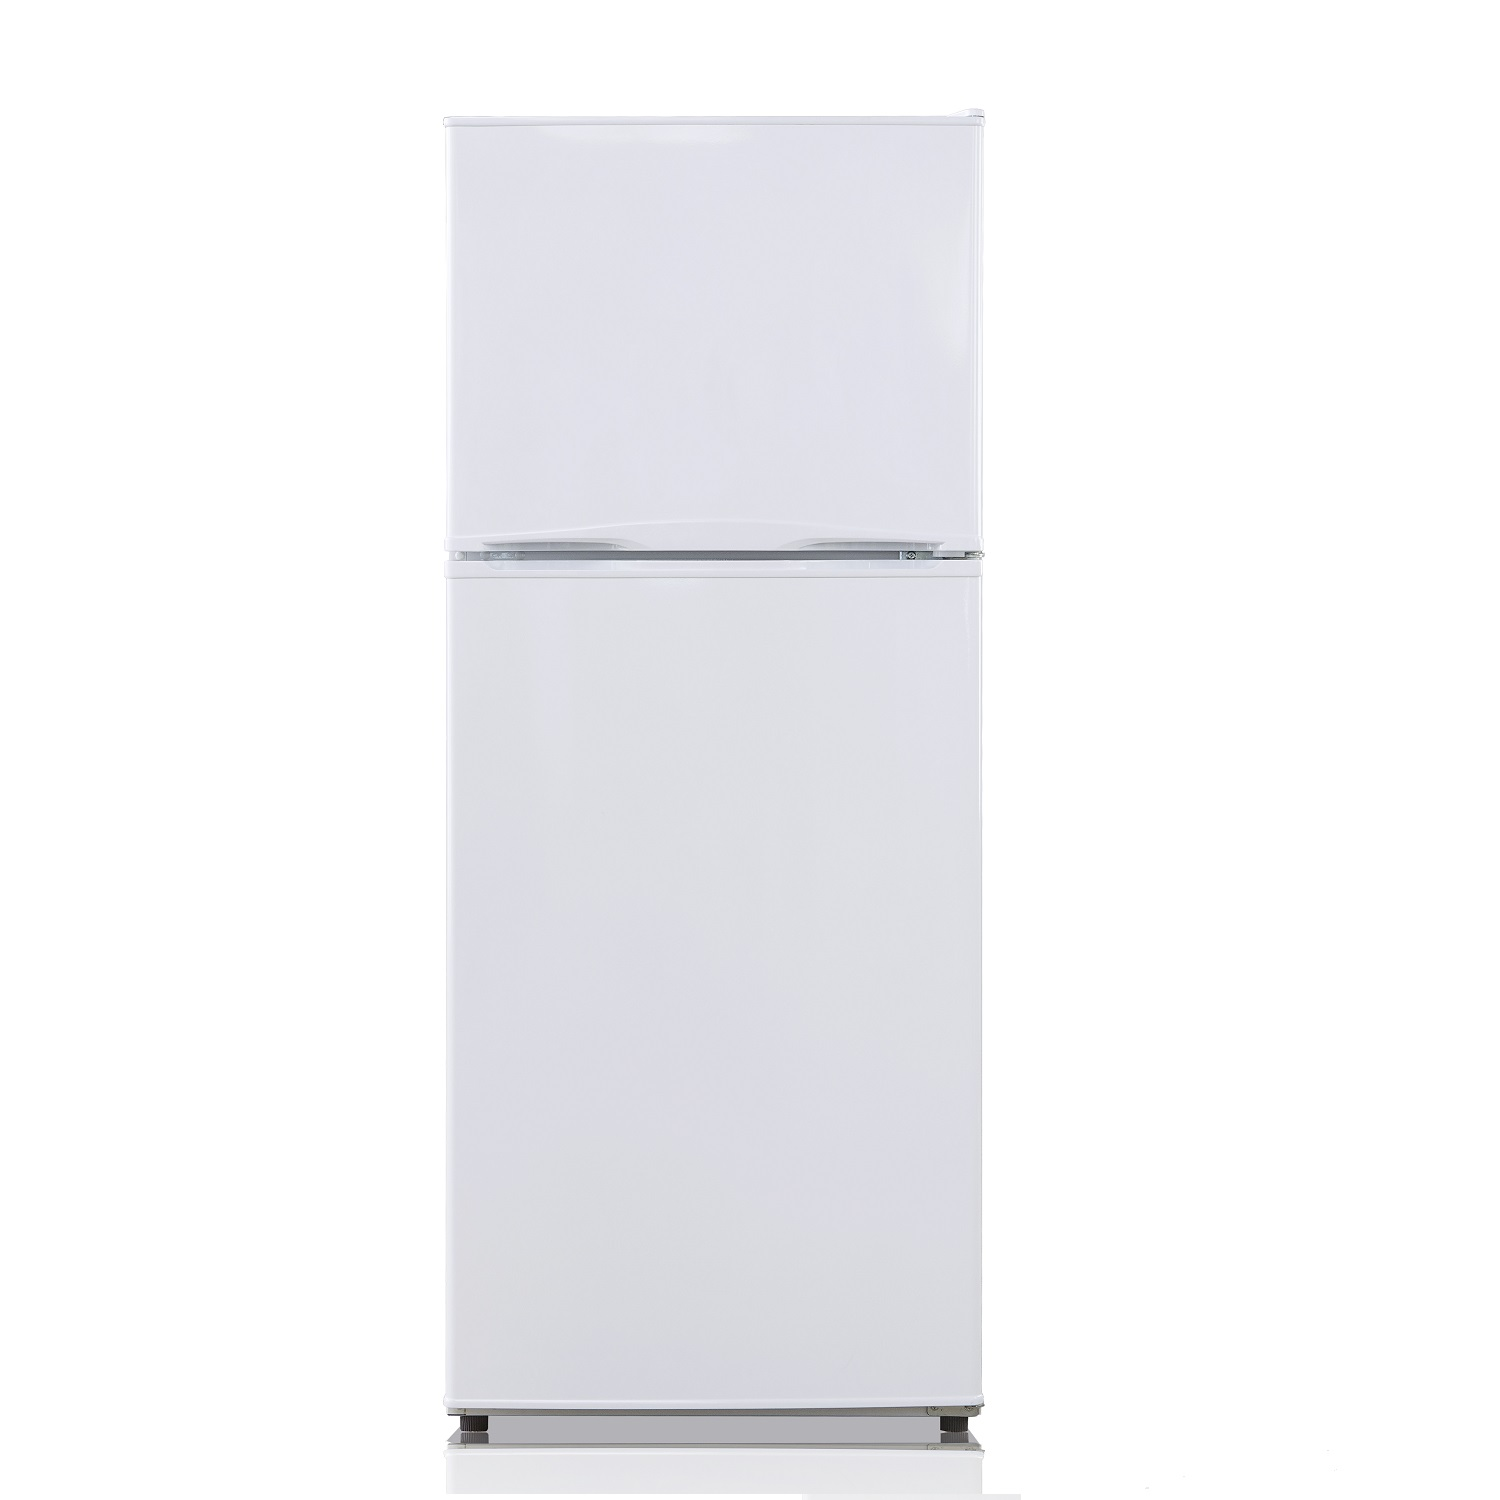 Equator-Midea 9.9 Cu. Ft. <br> Frost Free Top Freezer Refrigerator in Stainless Steel